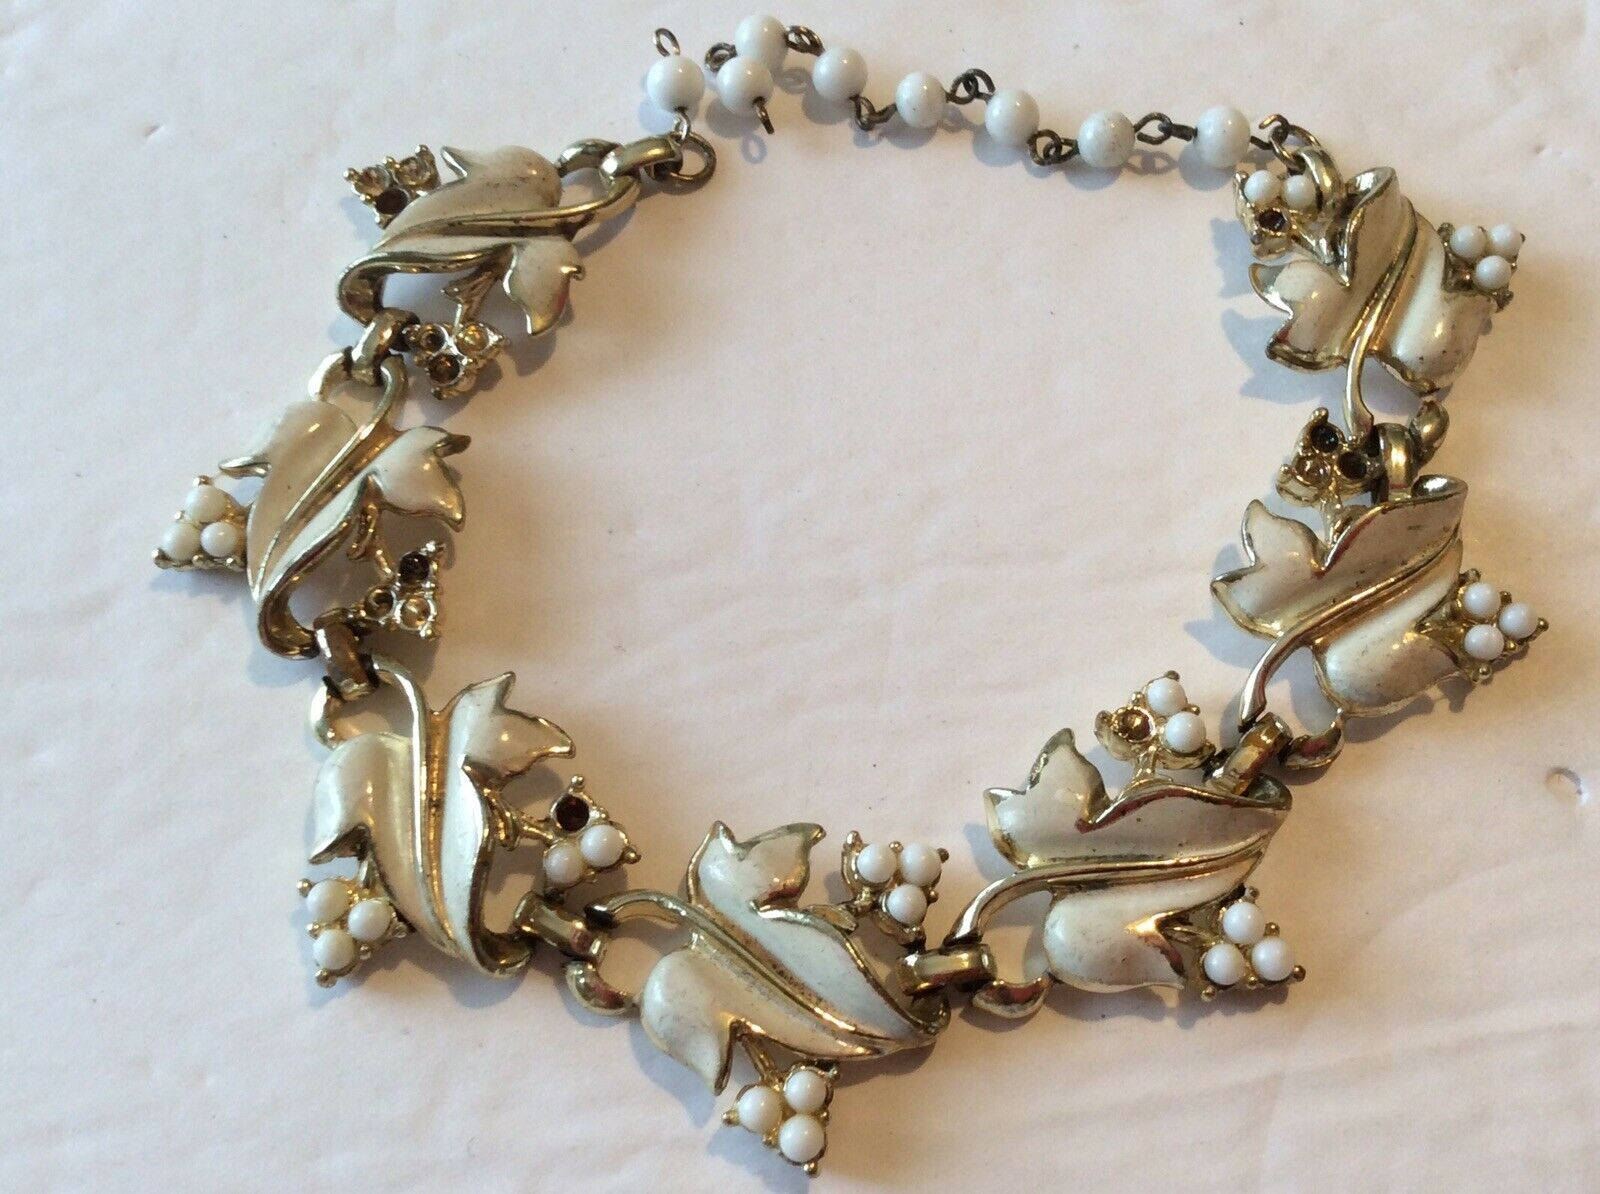 Ivory Enamel Collectible Designer Vintage 50s Signed Coro White Enamel Leaf Bead Cluster Necklace and Clip On Earrings Set Gold Tone